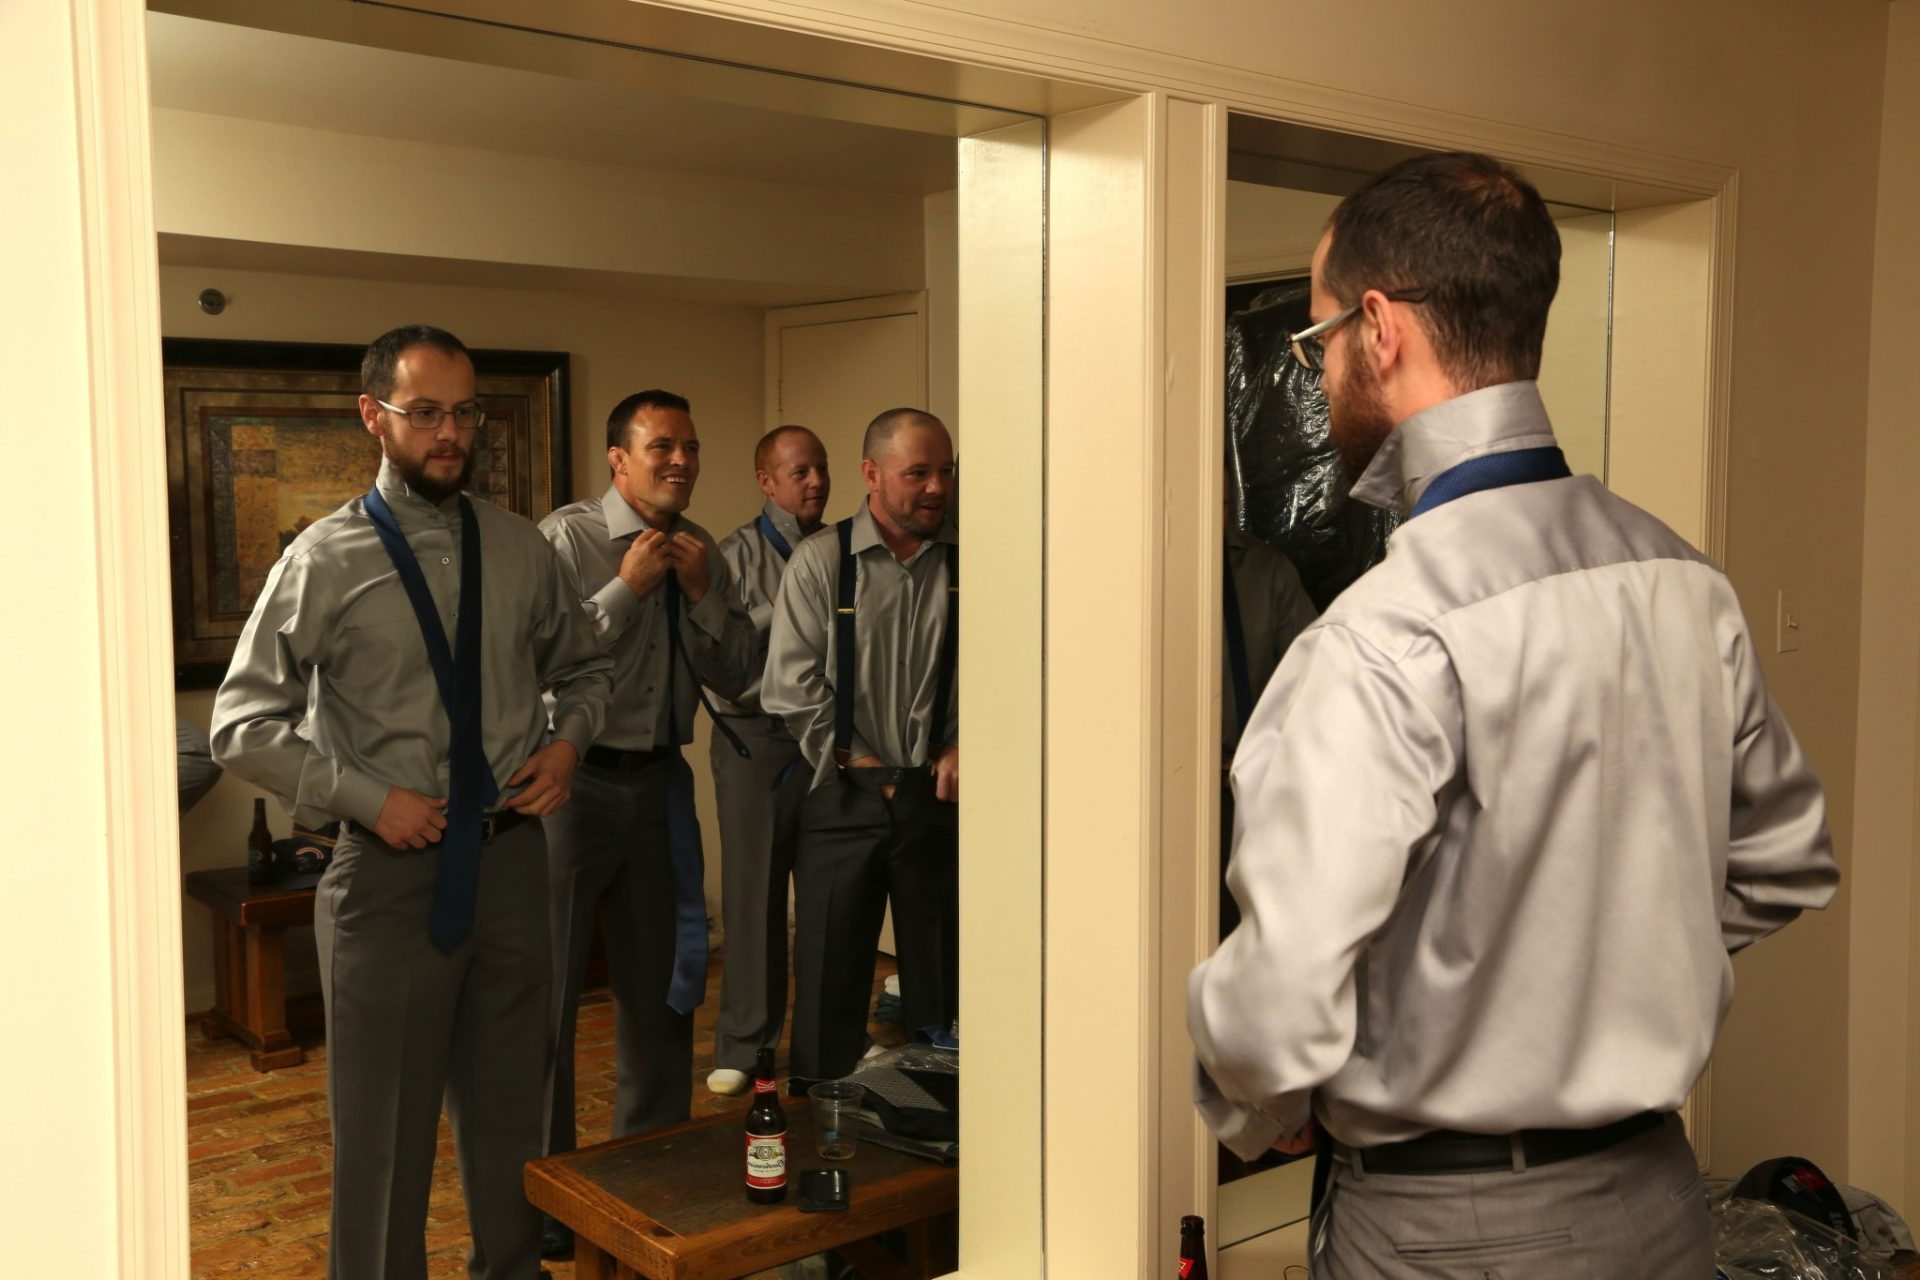 Large mirrors make wedding preparations easy for groom and groom's men